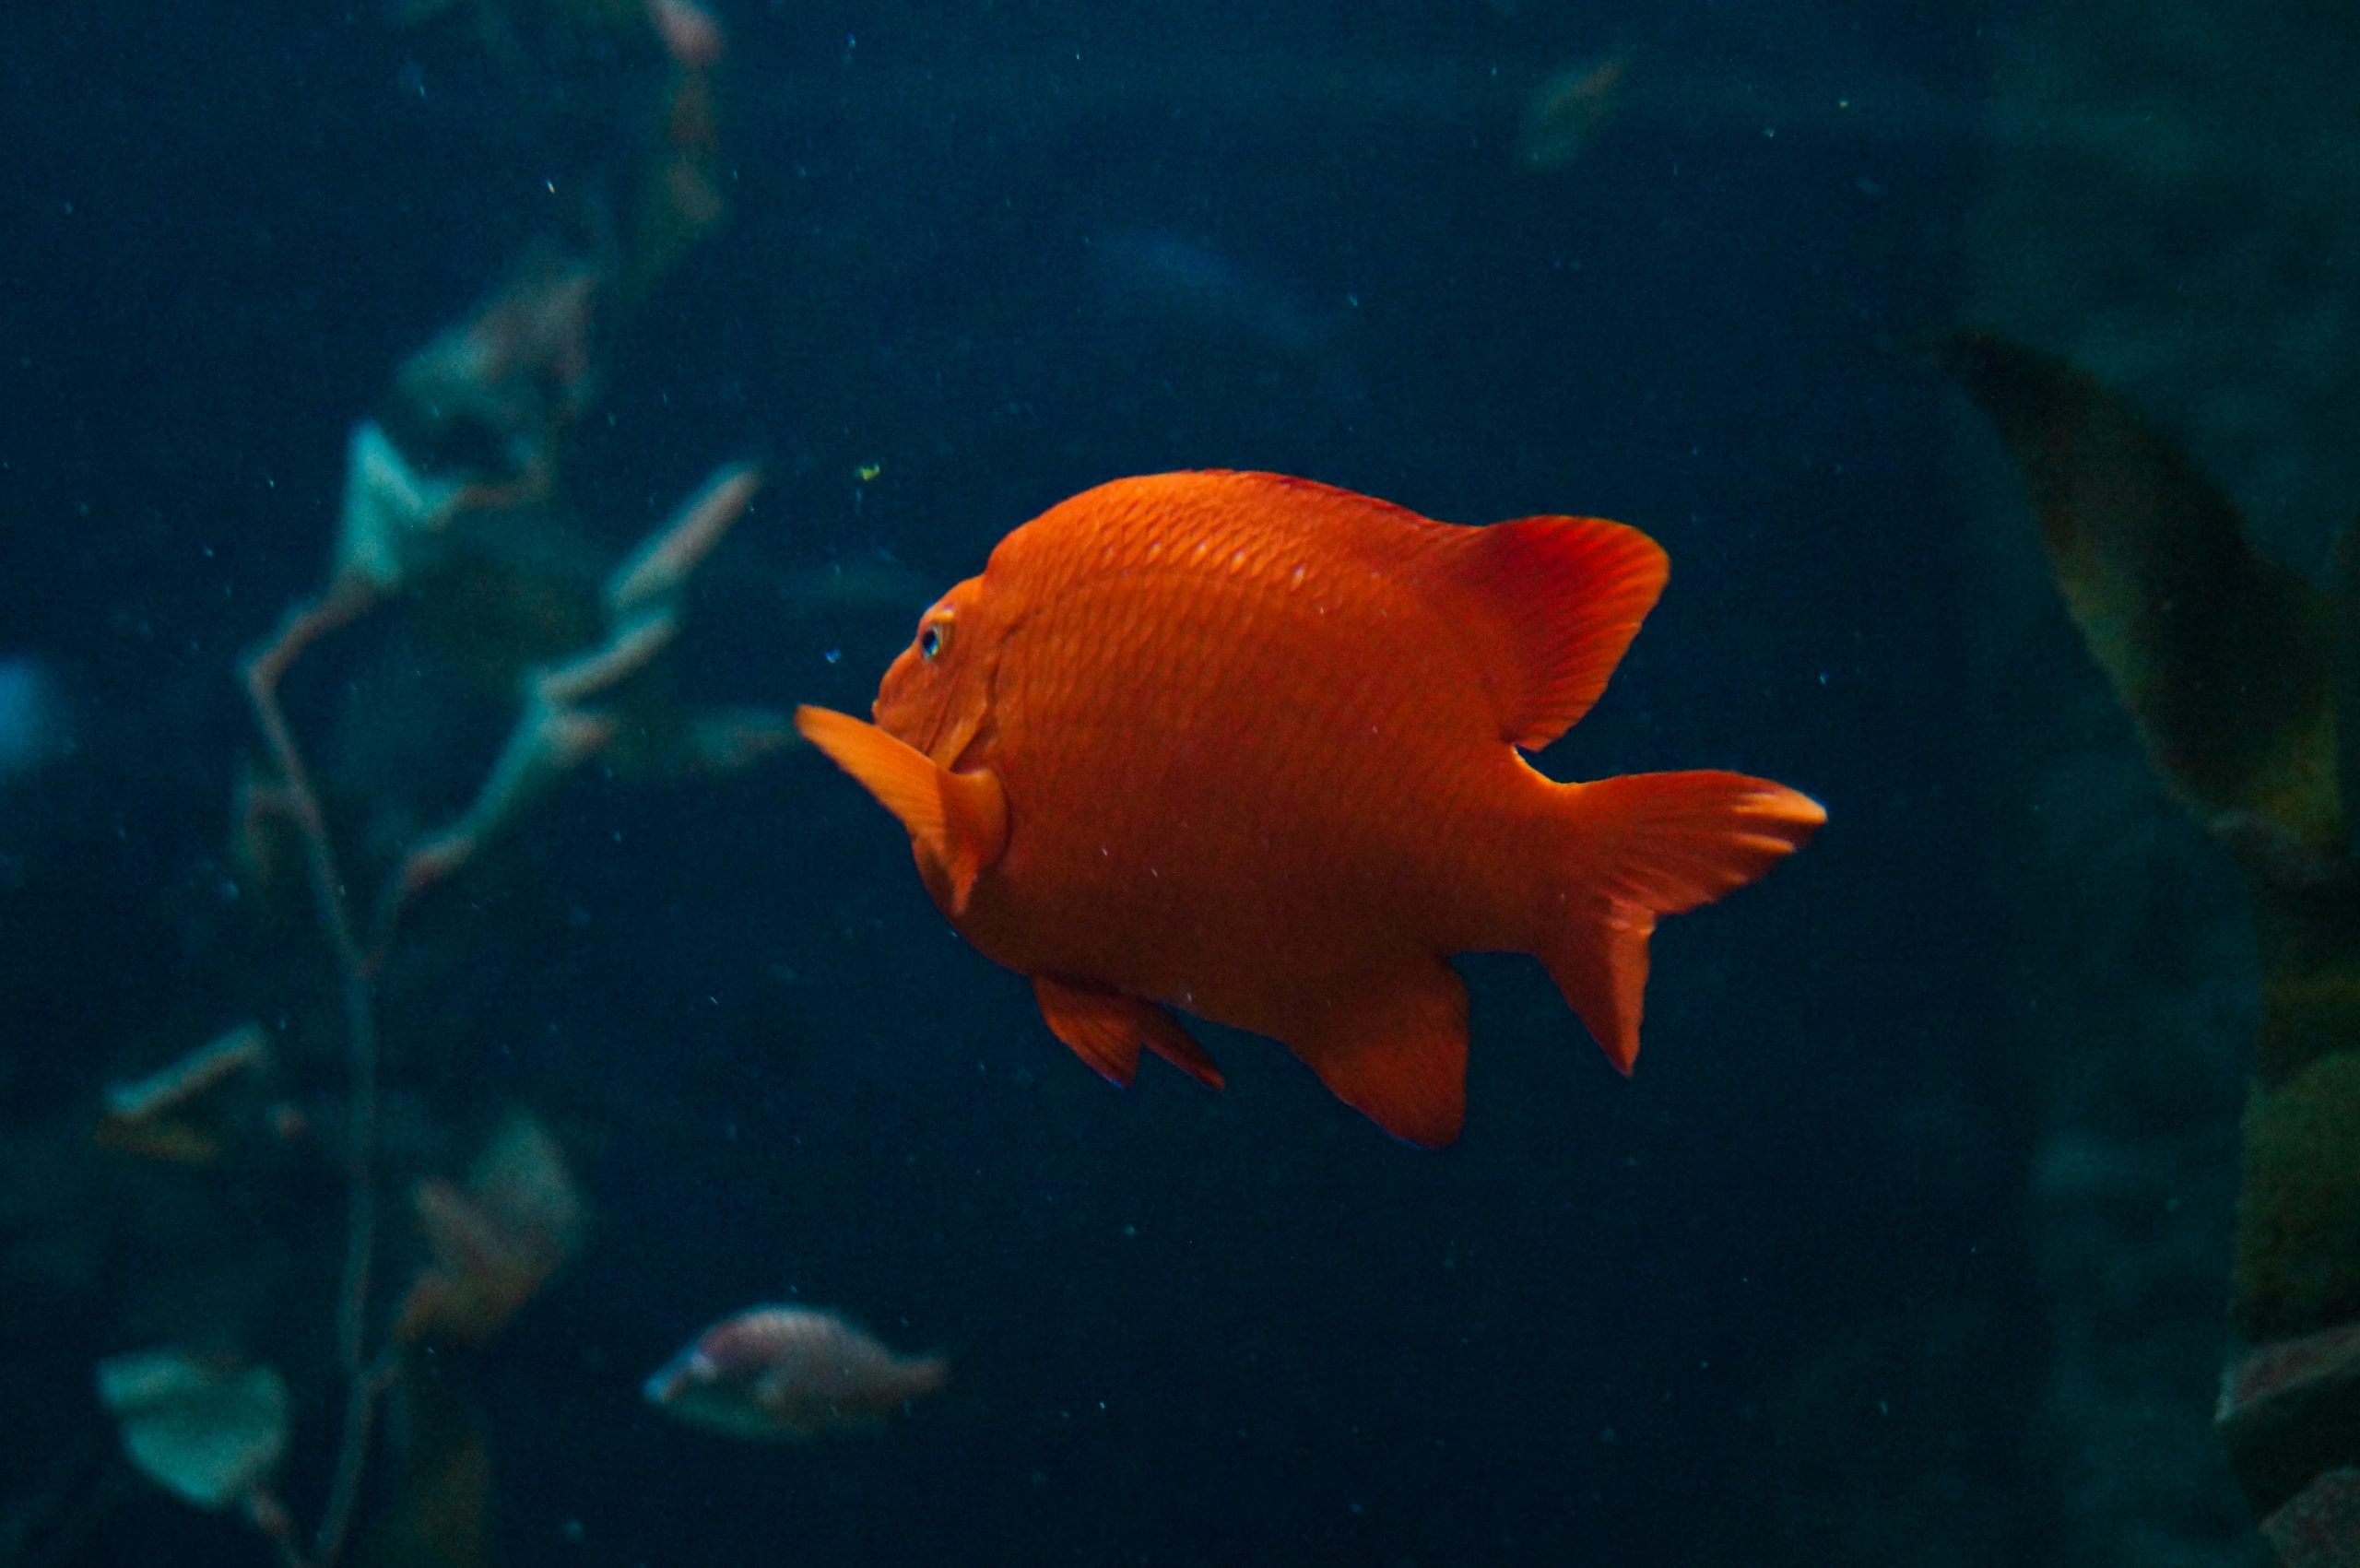 One Lonely Gold Fish vivid red stares at glass